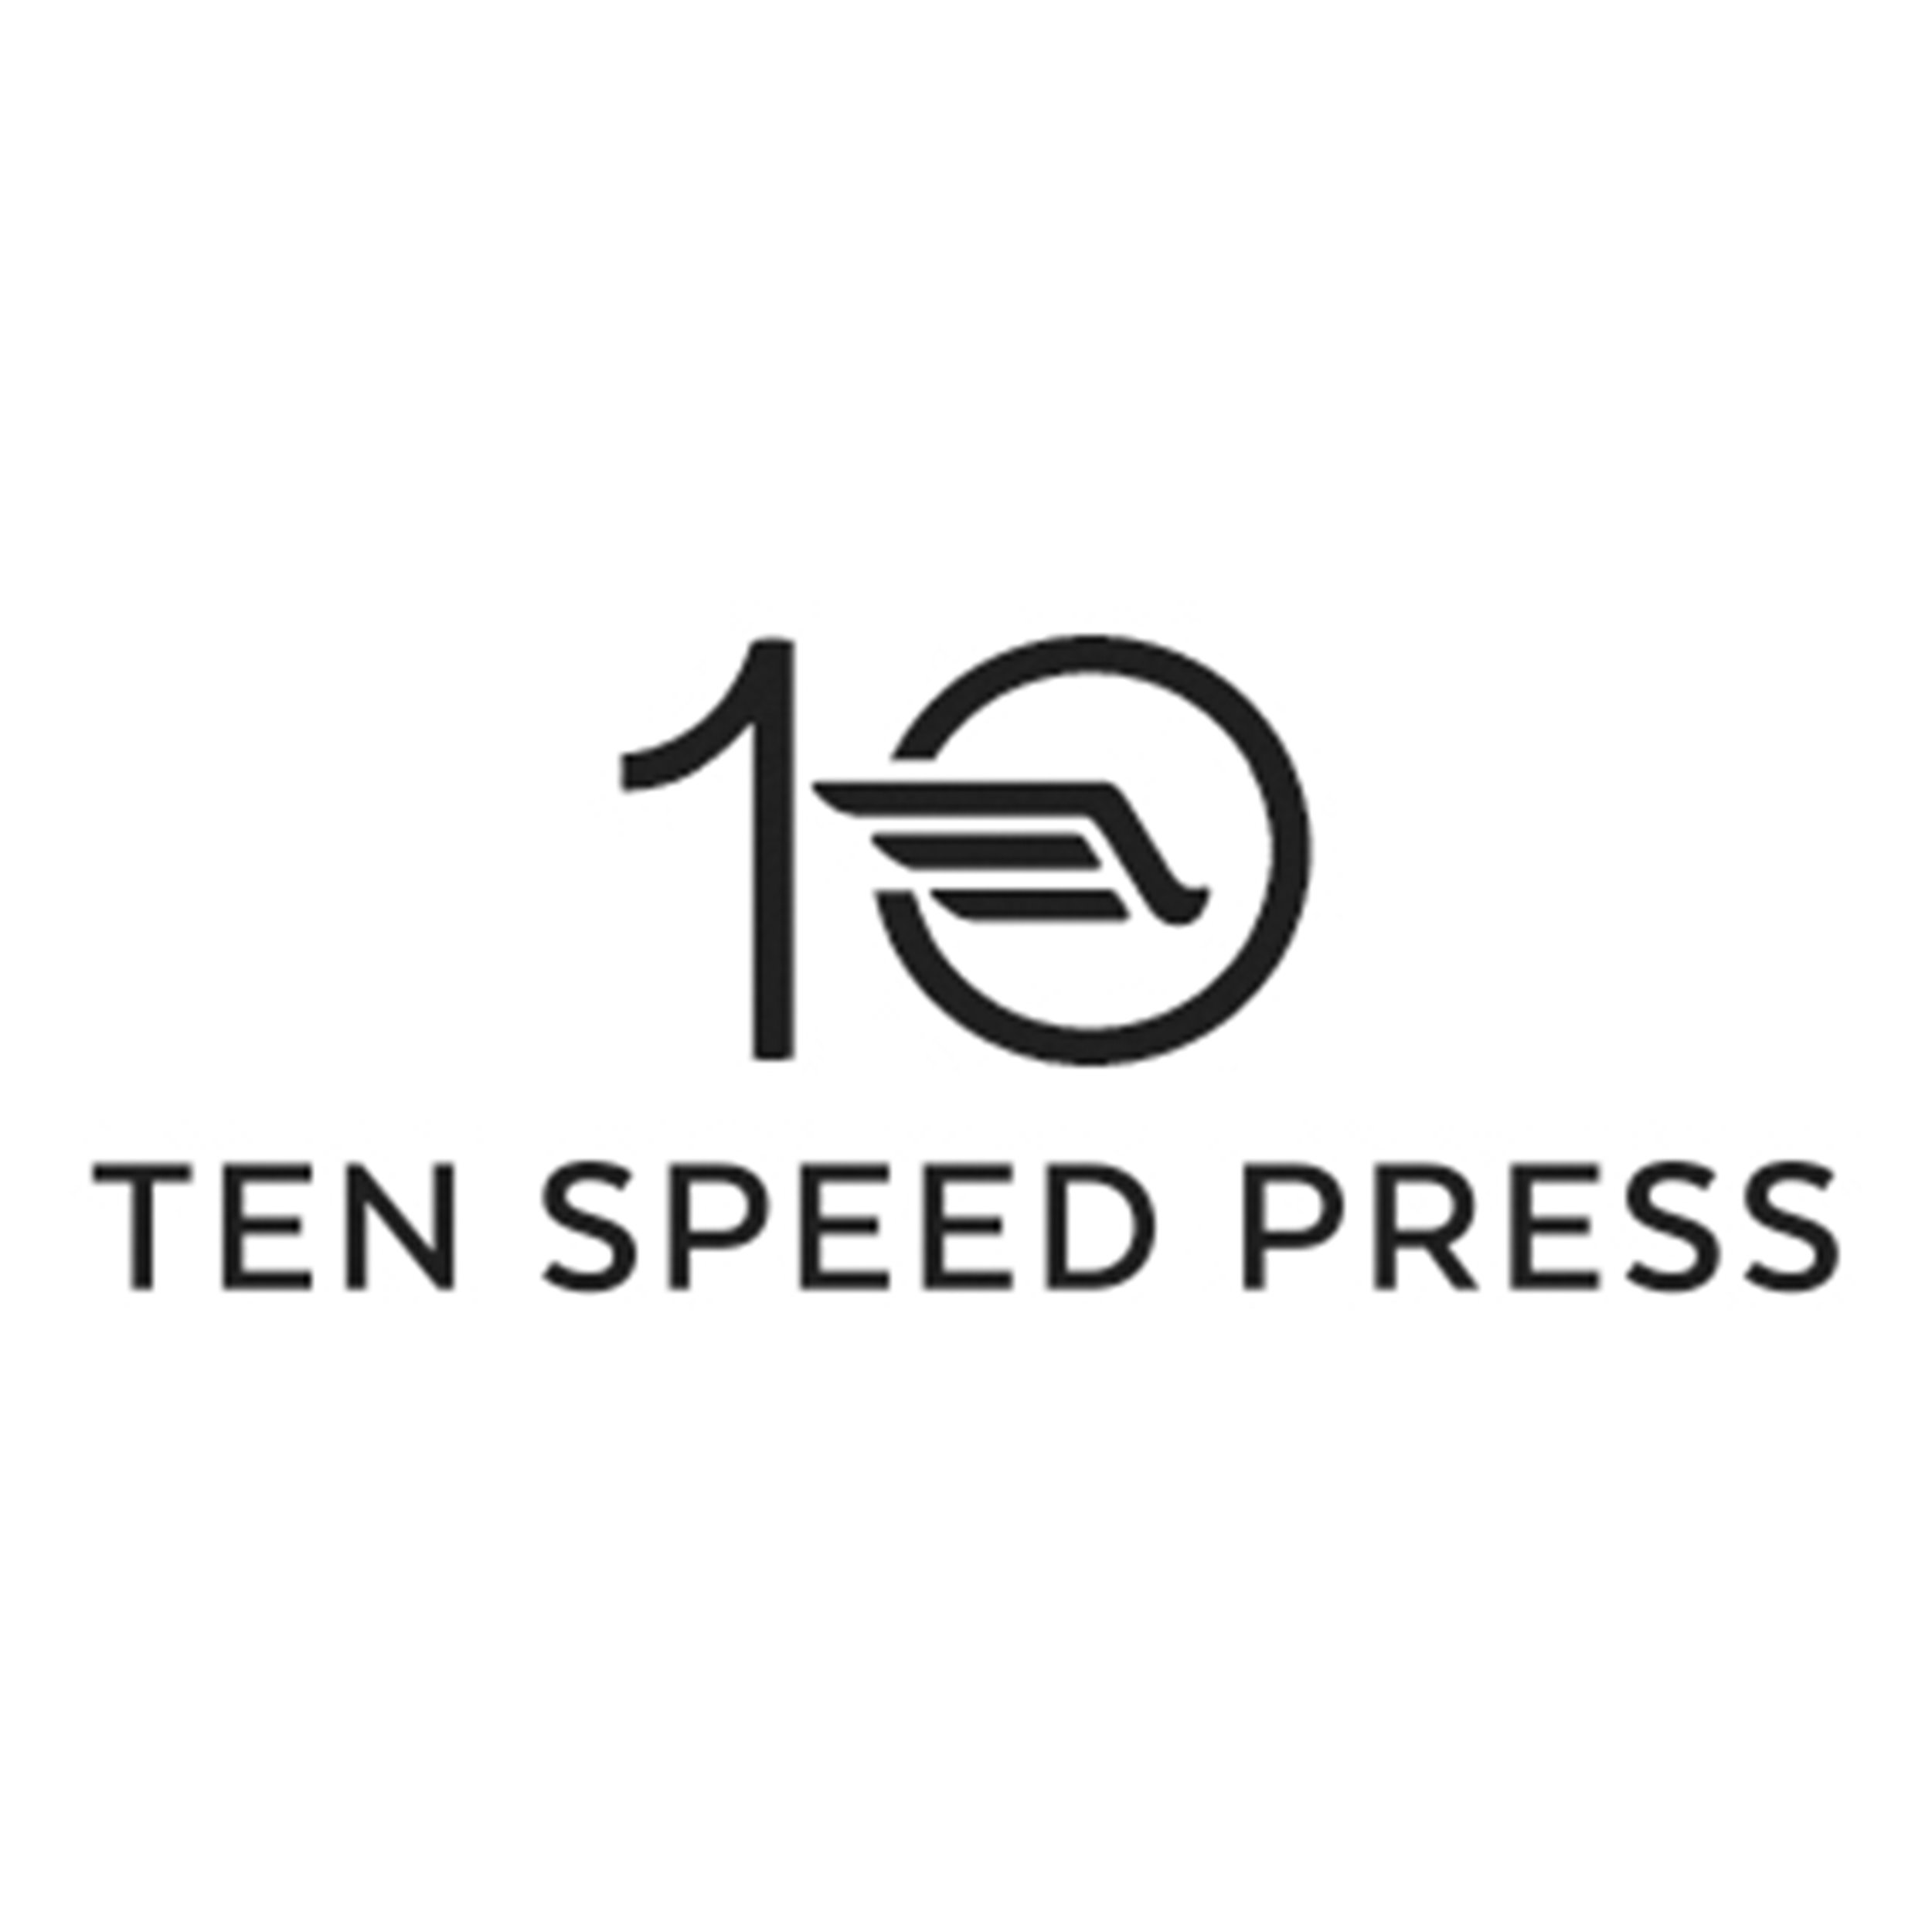 New_10speedpress_logo.jpg